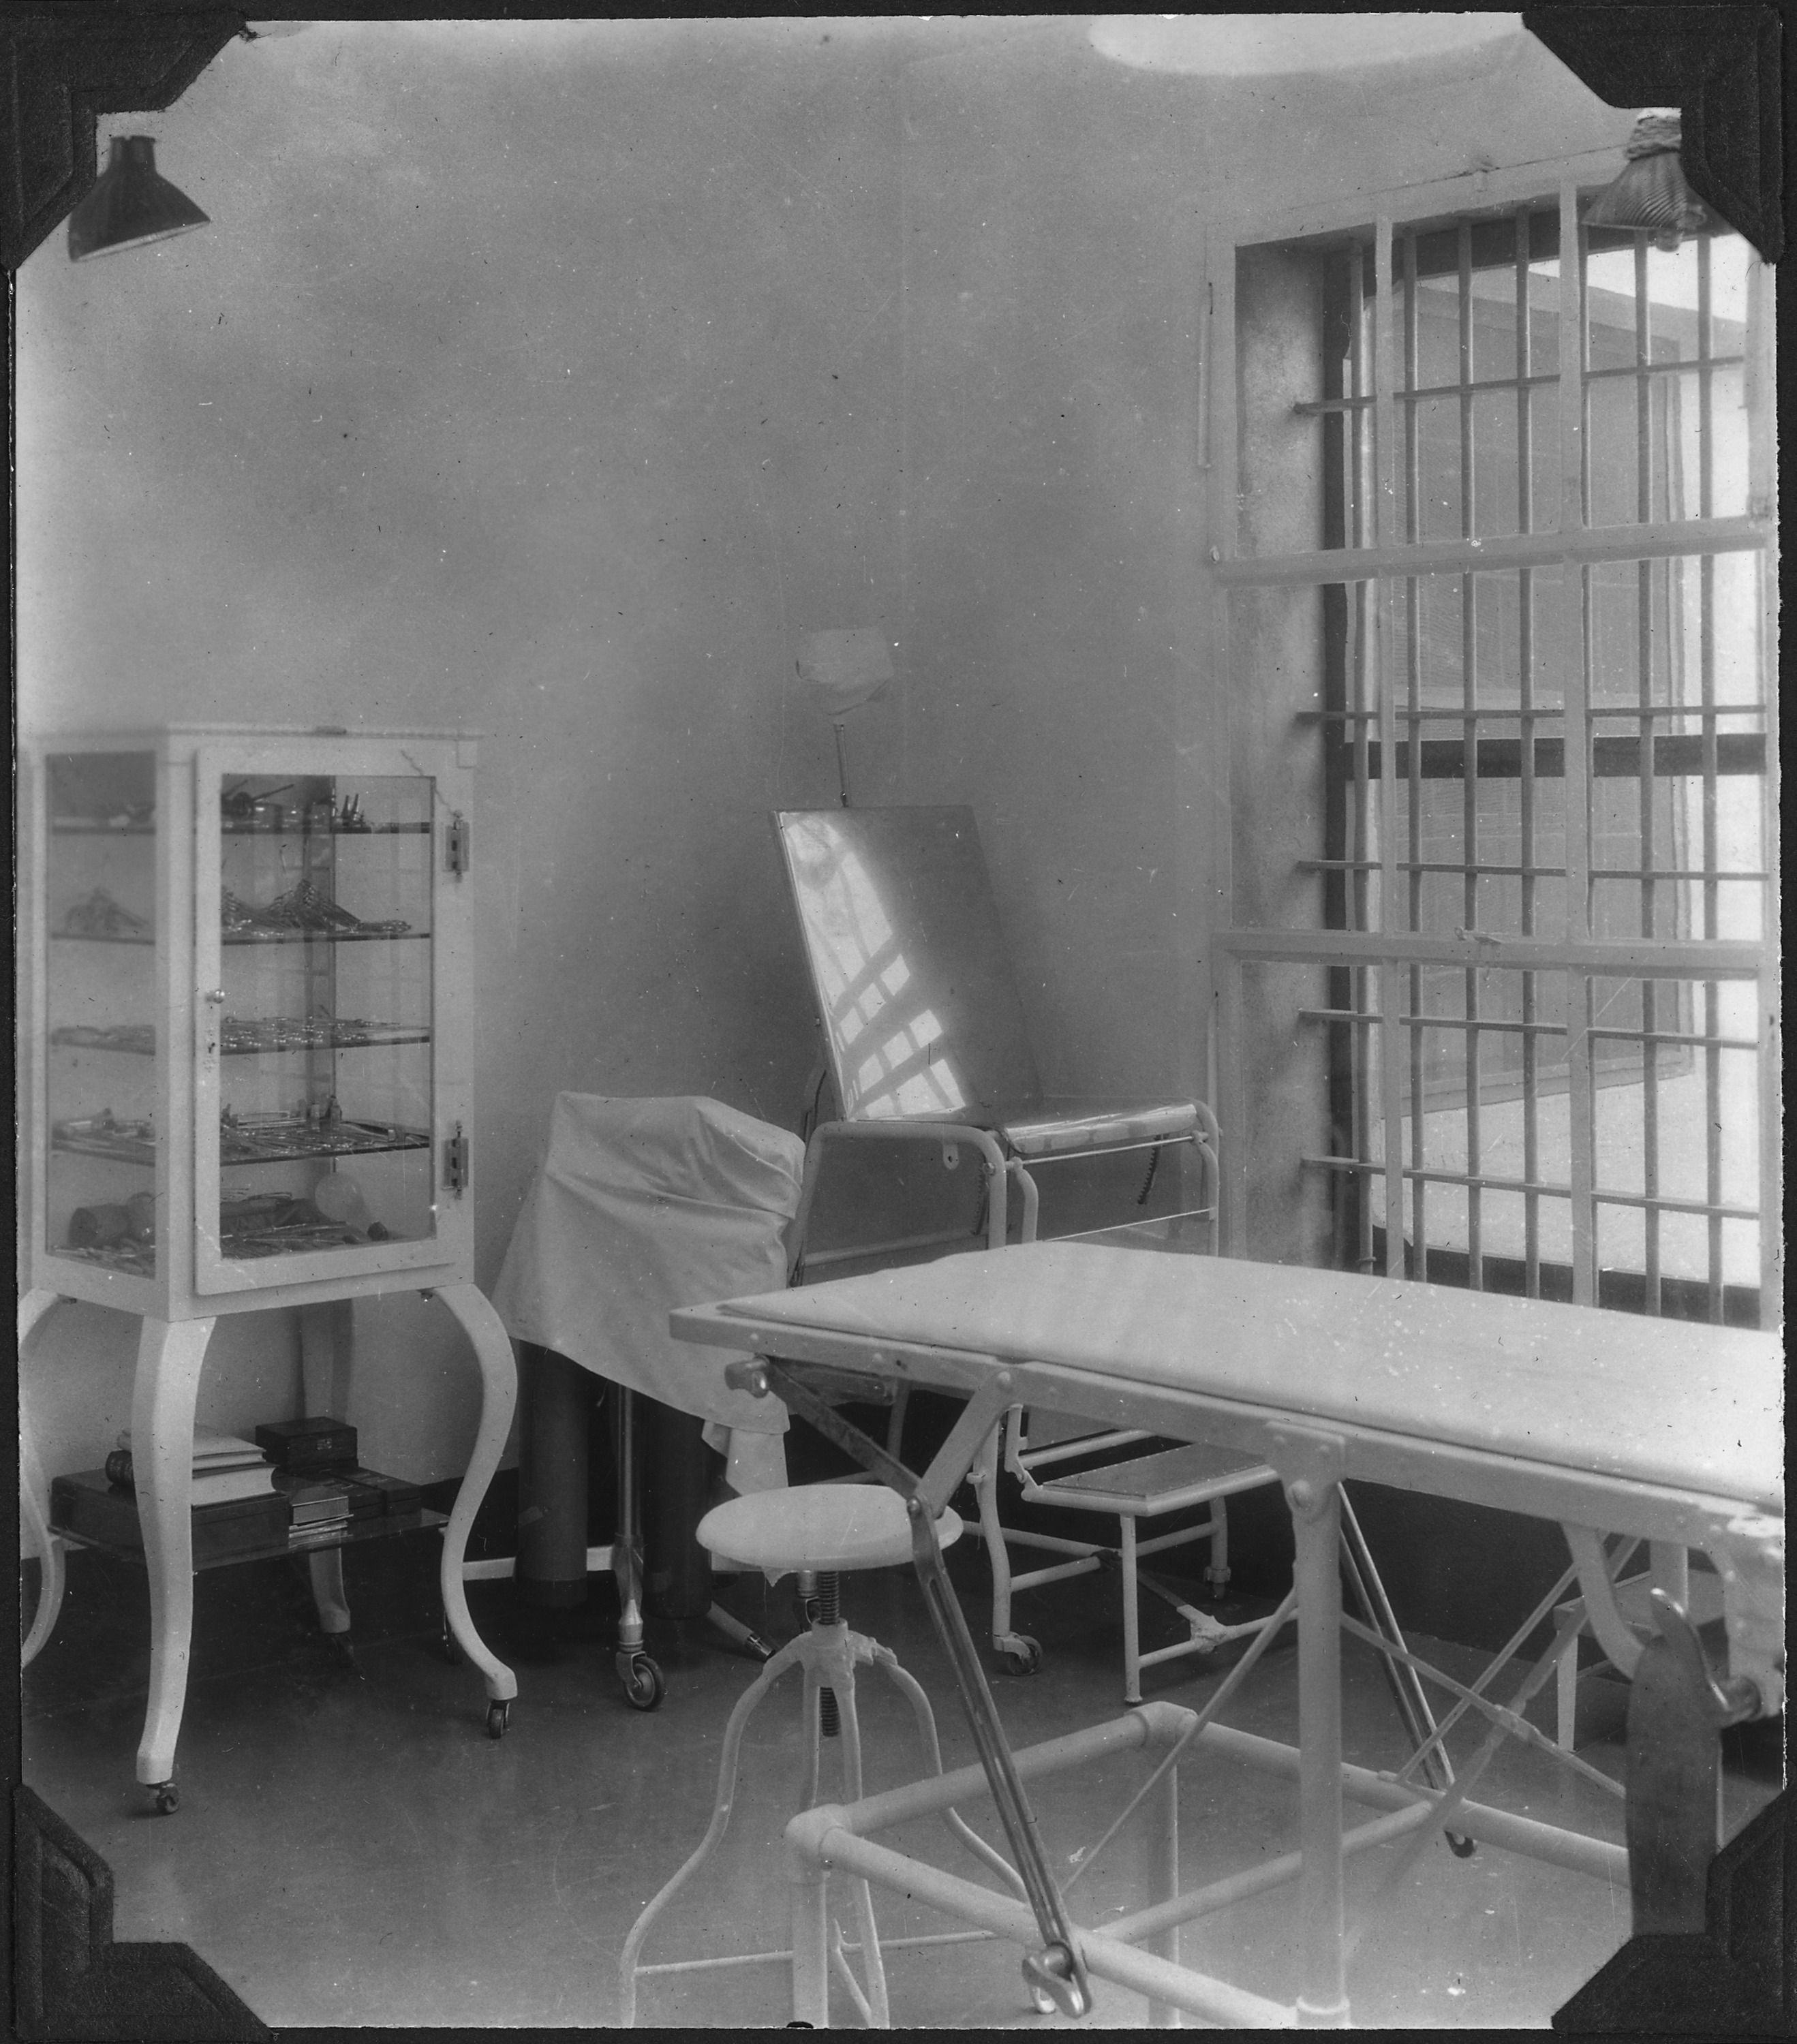 Old Hospital Room - Google Search